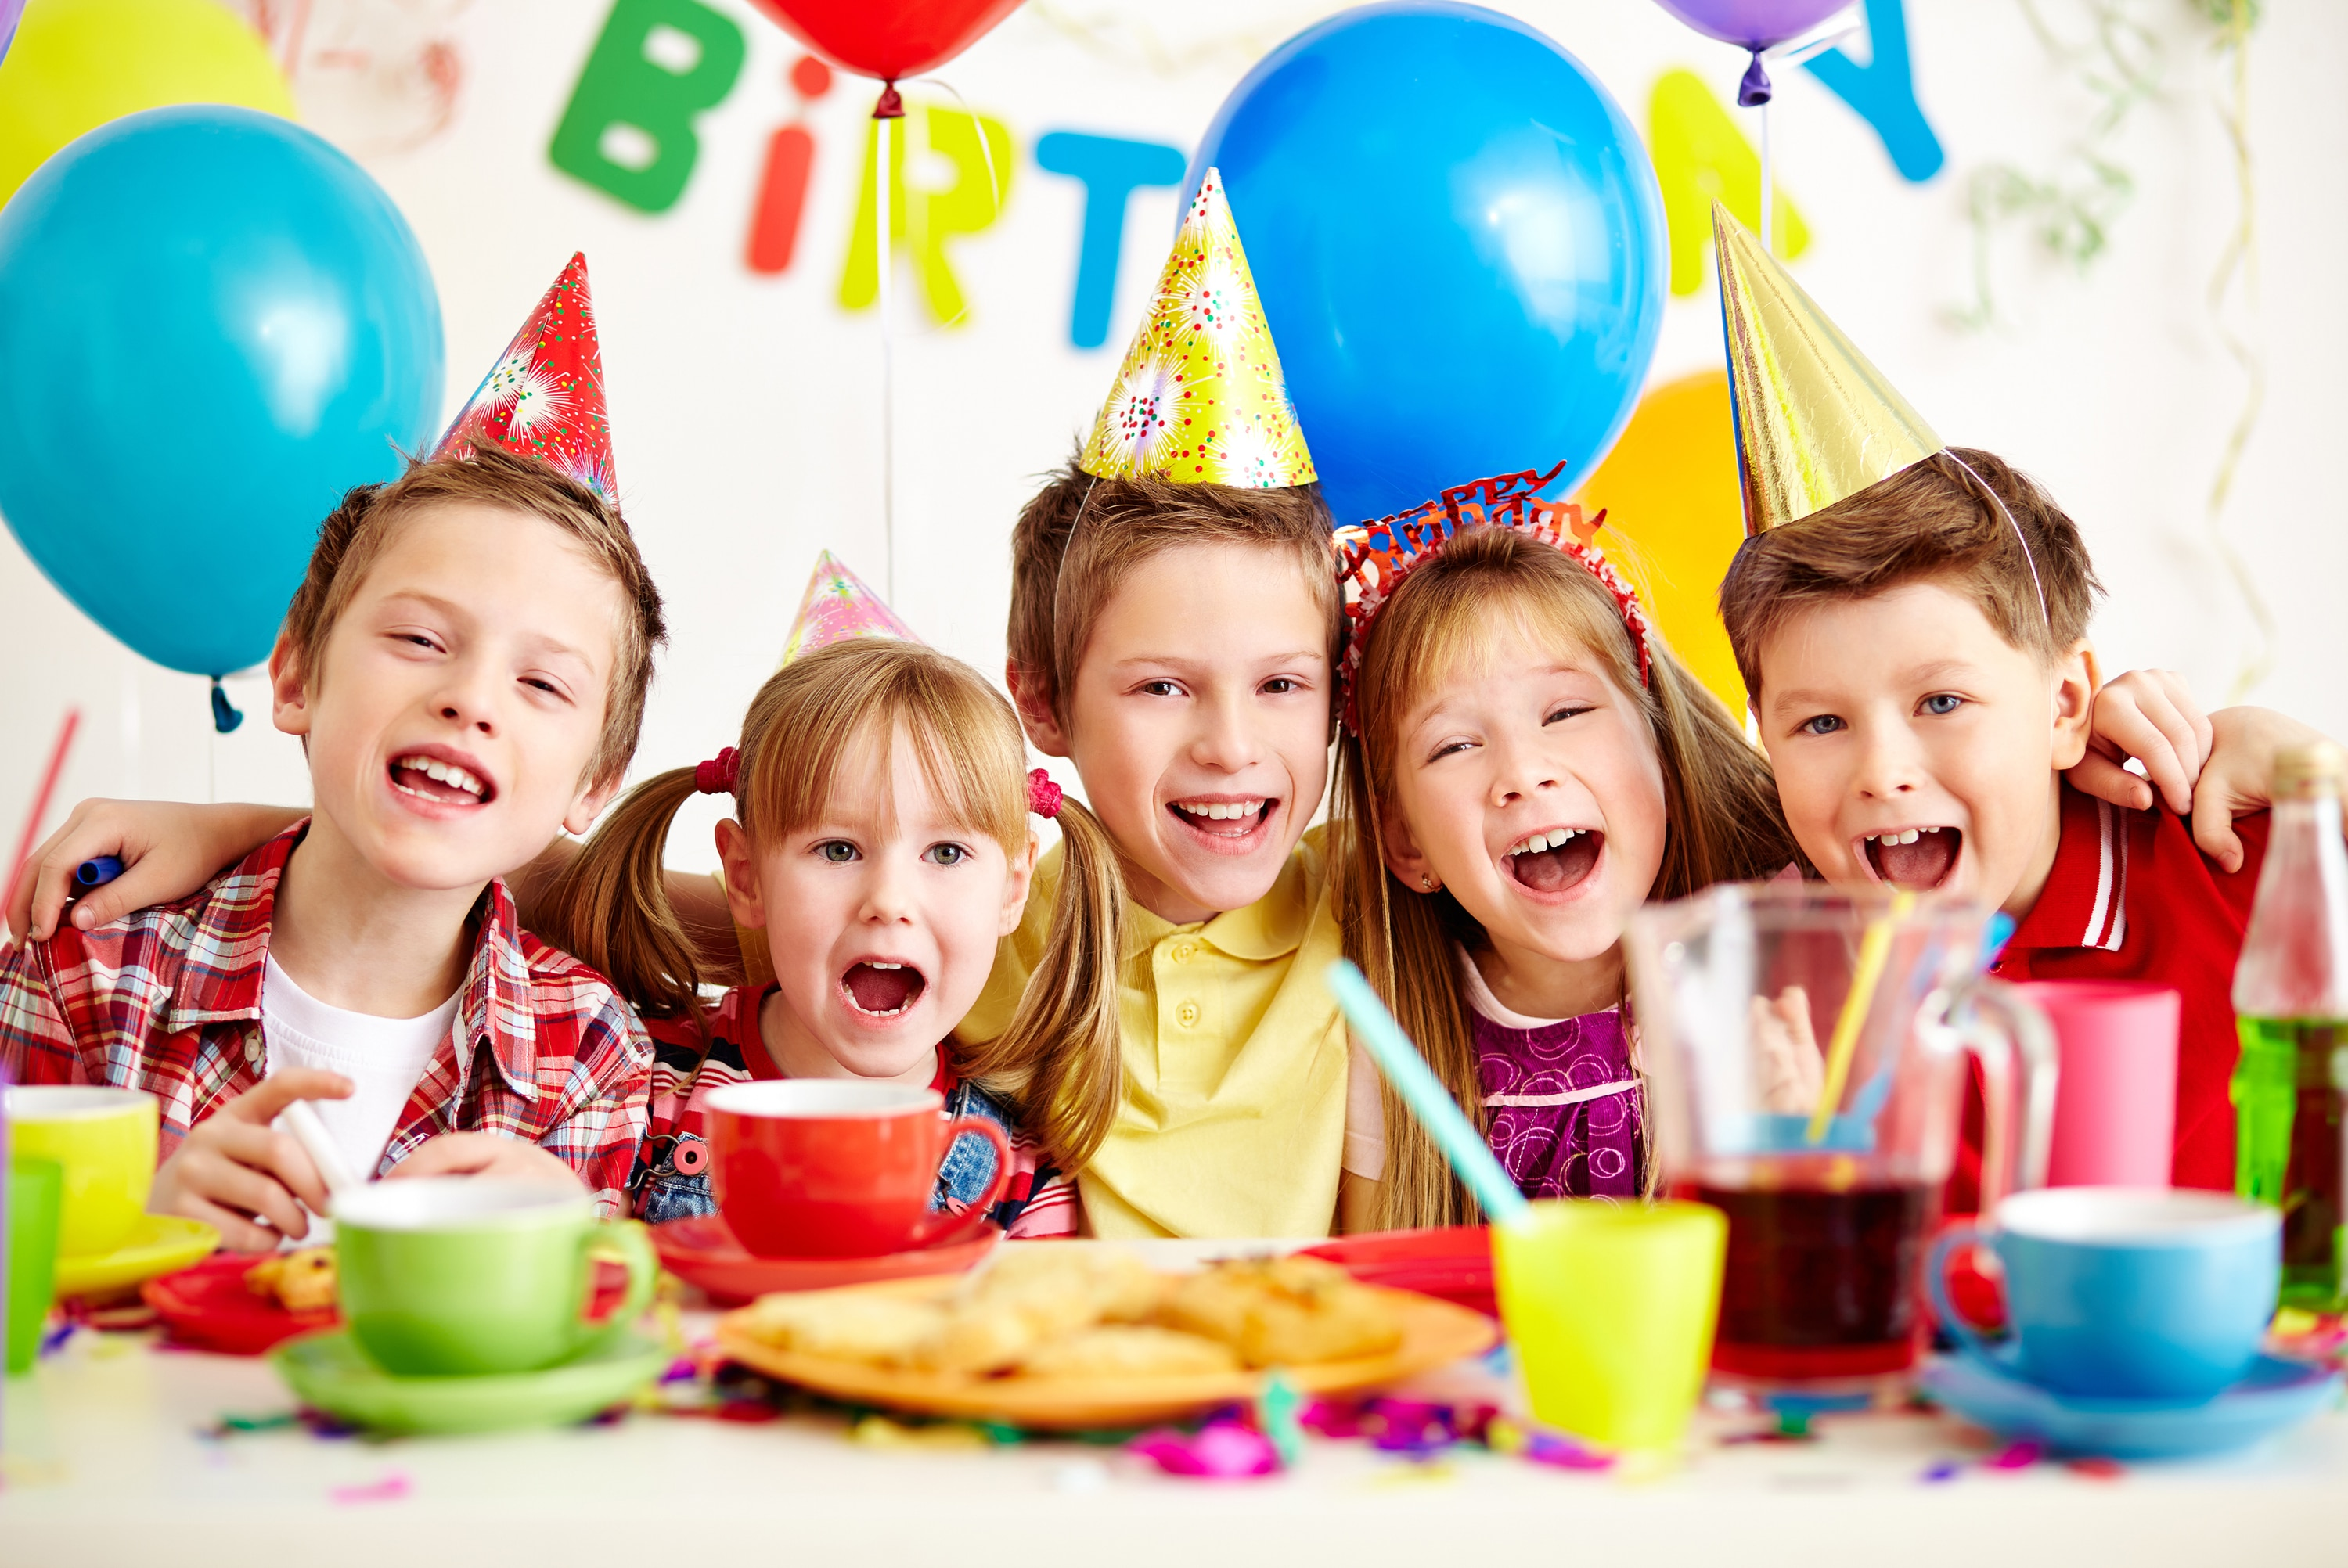 How To Plan A Kids Birthday Party On A Budget